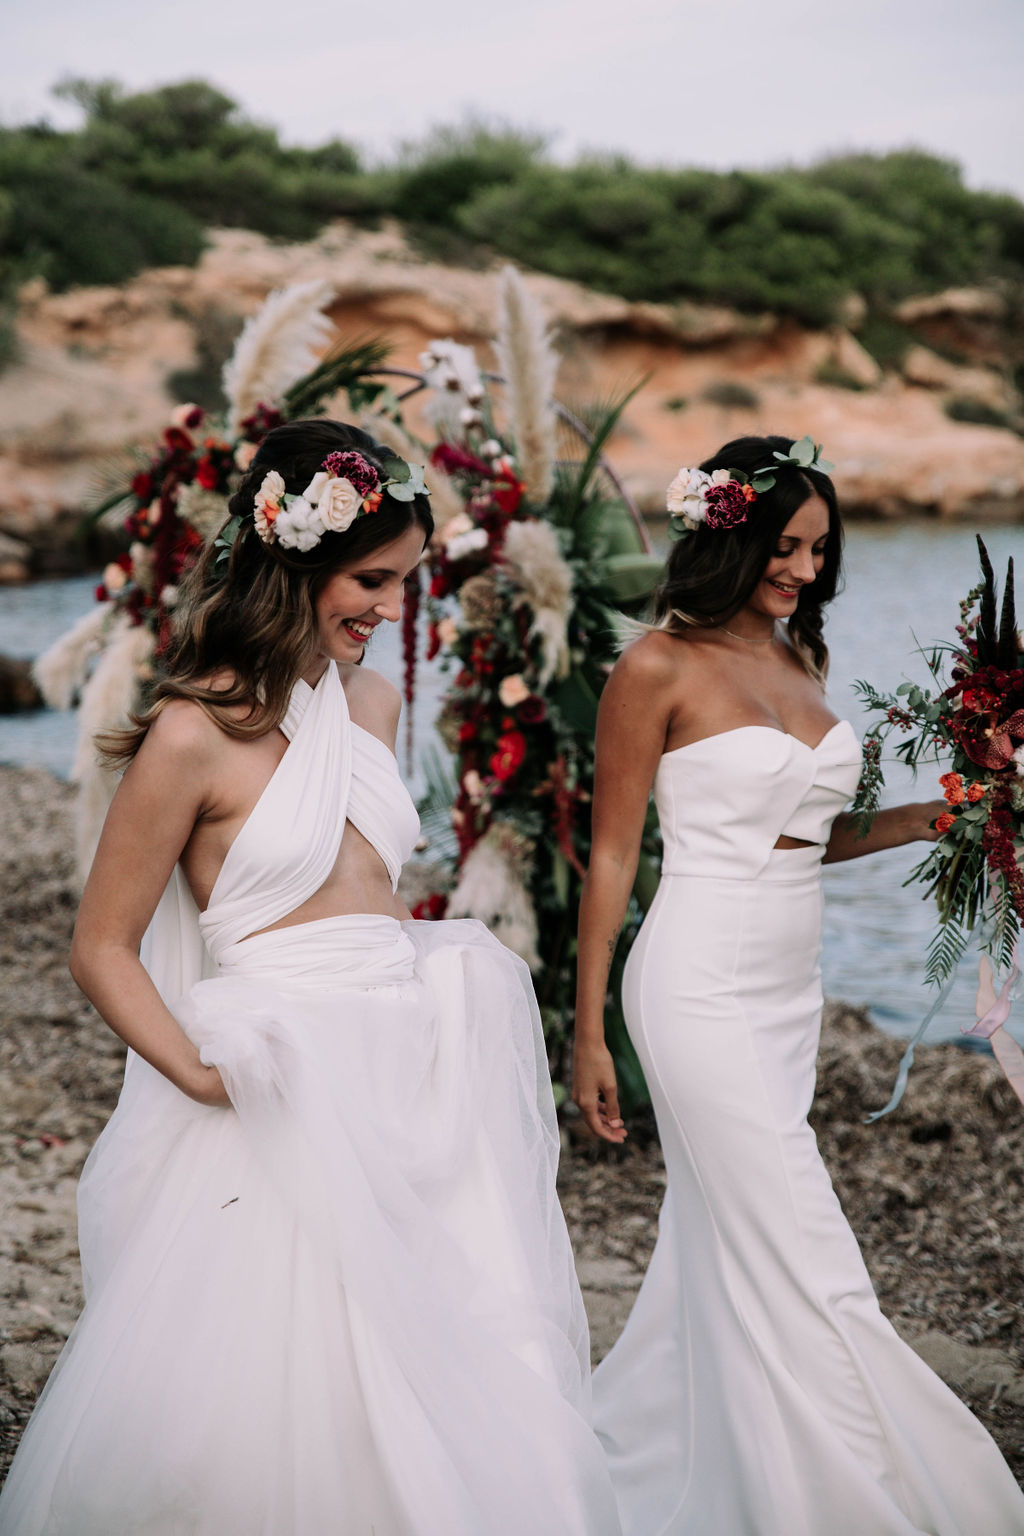 Two brides - love is love shoot - cathedral veil with lace - iniza destination wedding inspiration (125)